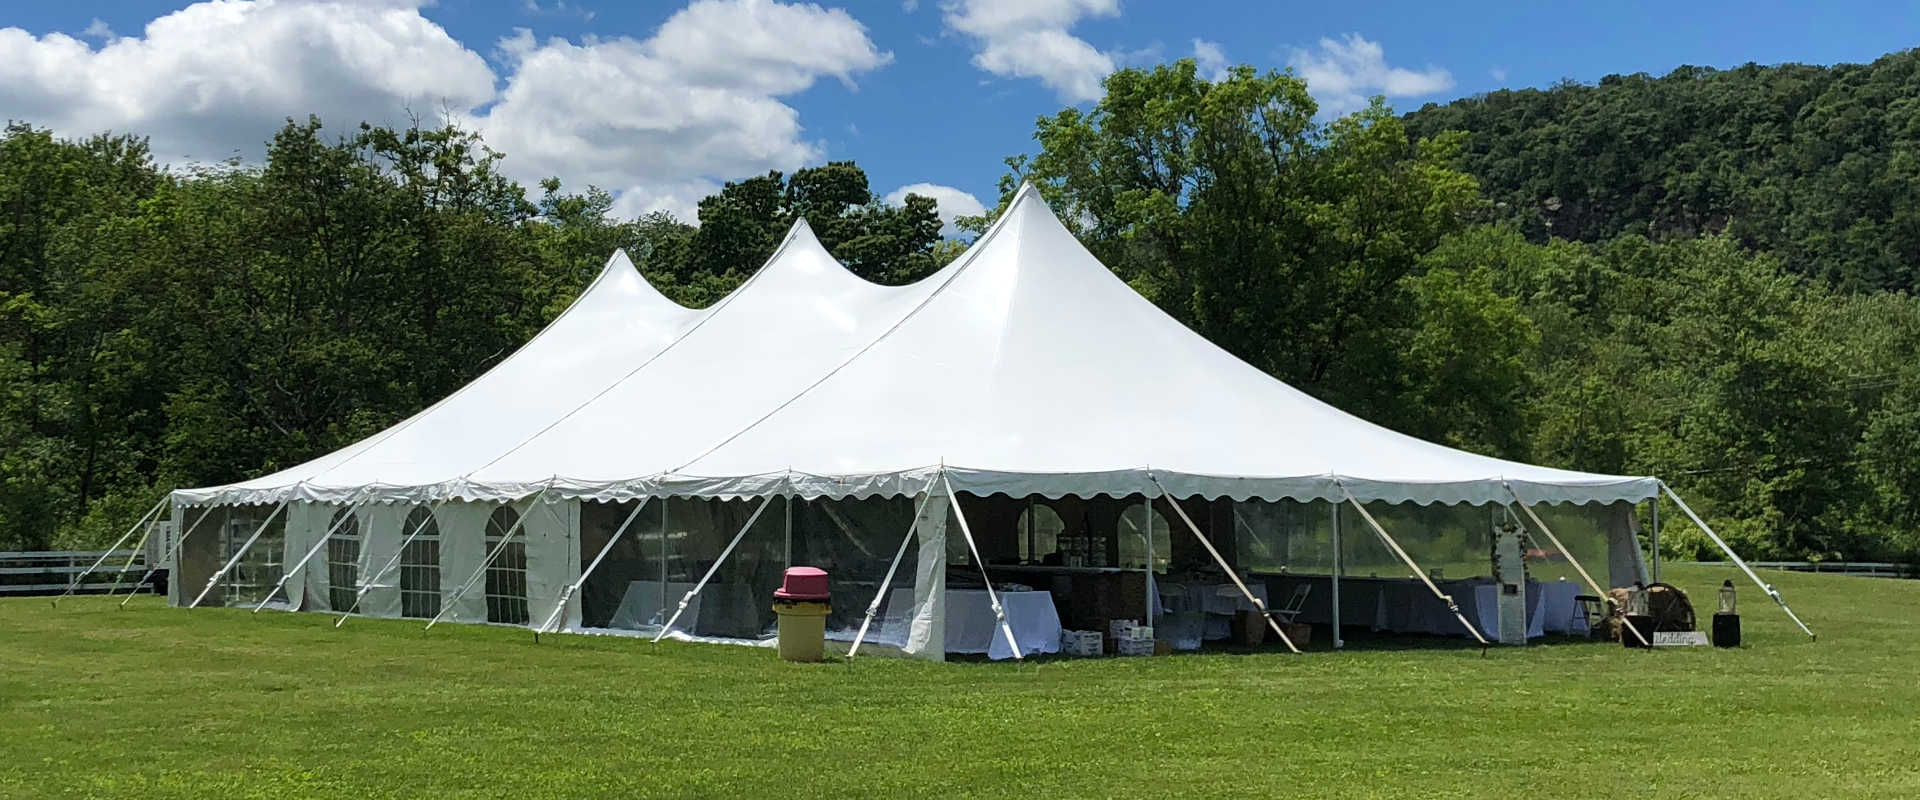 Party Rentals in Warren, Sussex, Morris & Essex Counties